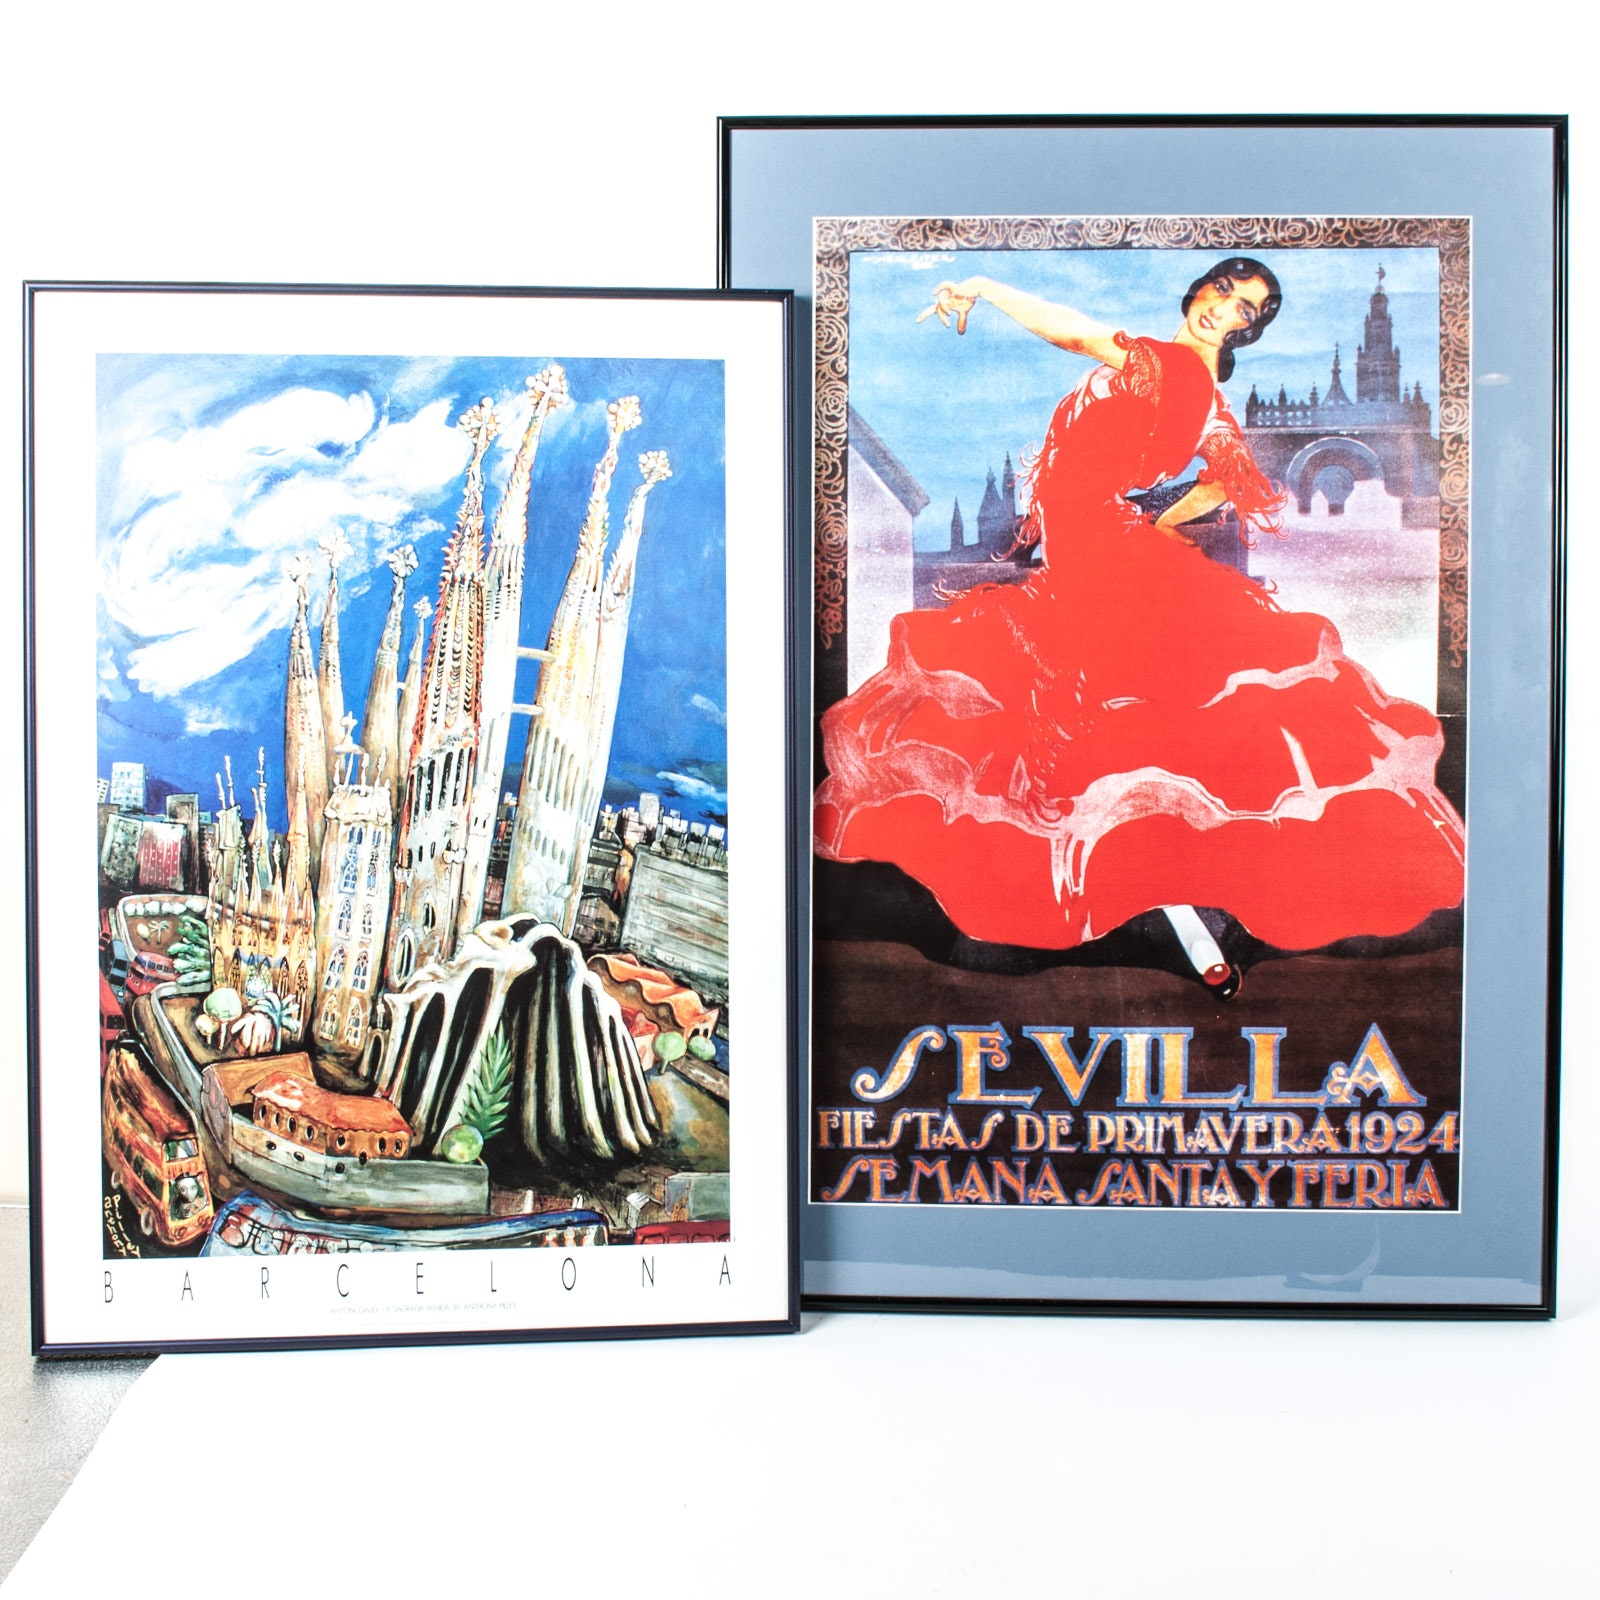 Large Framed Offset Lithograph on Paper Posters of Spain